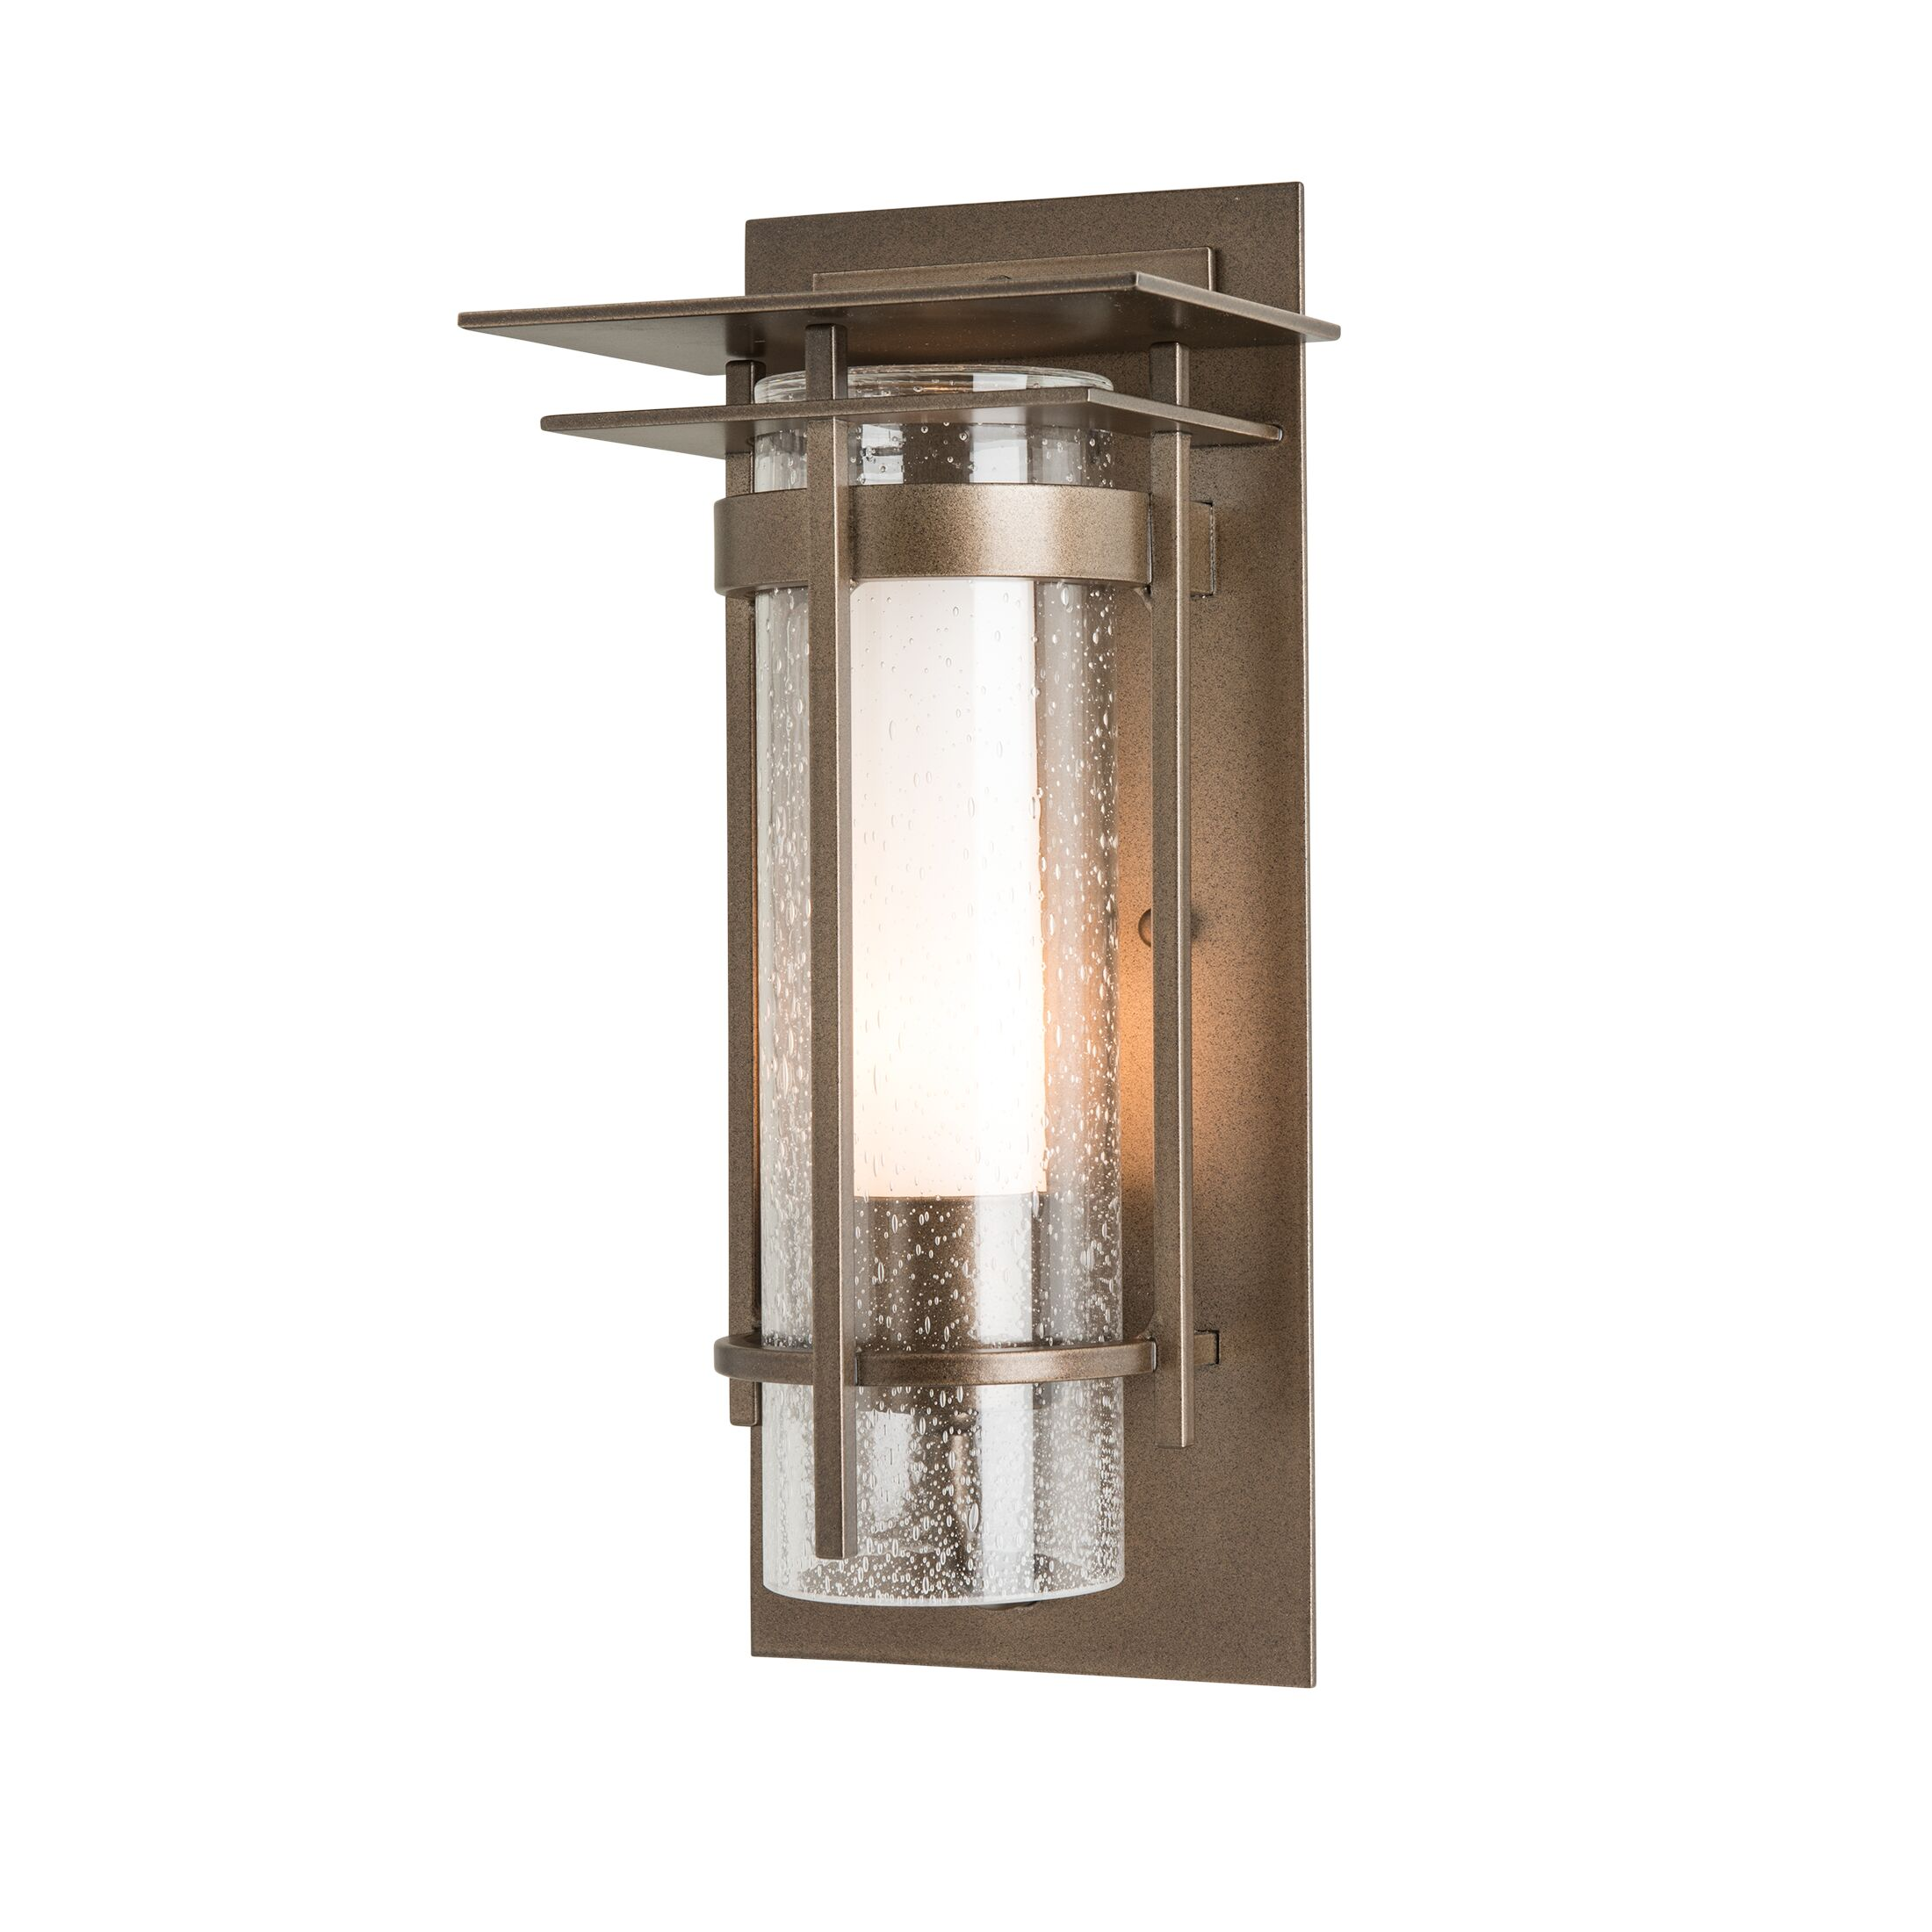 Product Detail: Banded Seeded Glass Small Outdoor Sconce with Top Plate